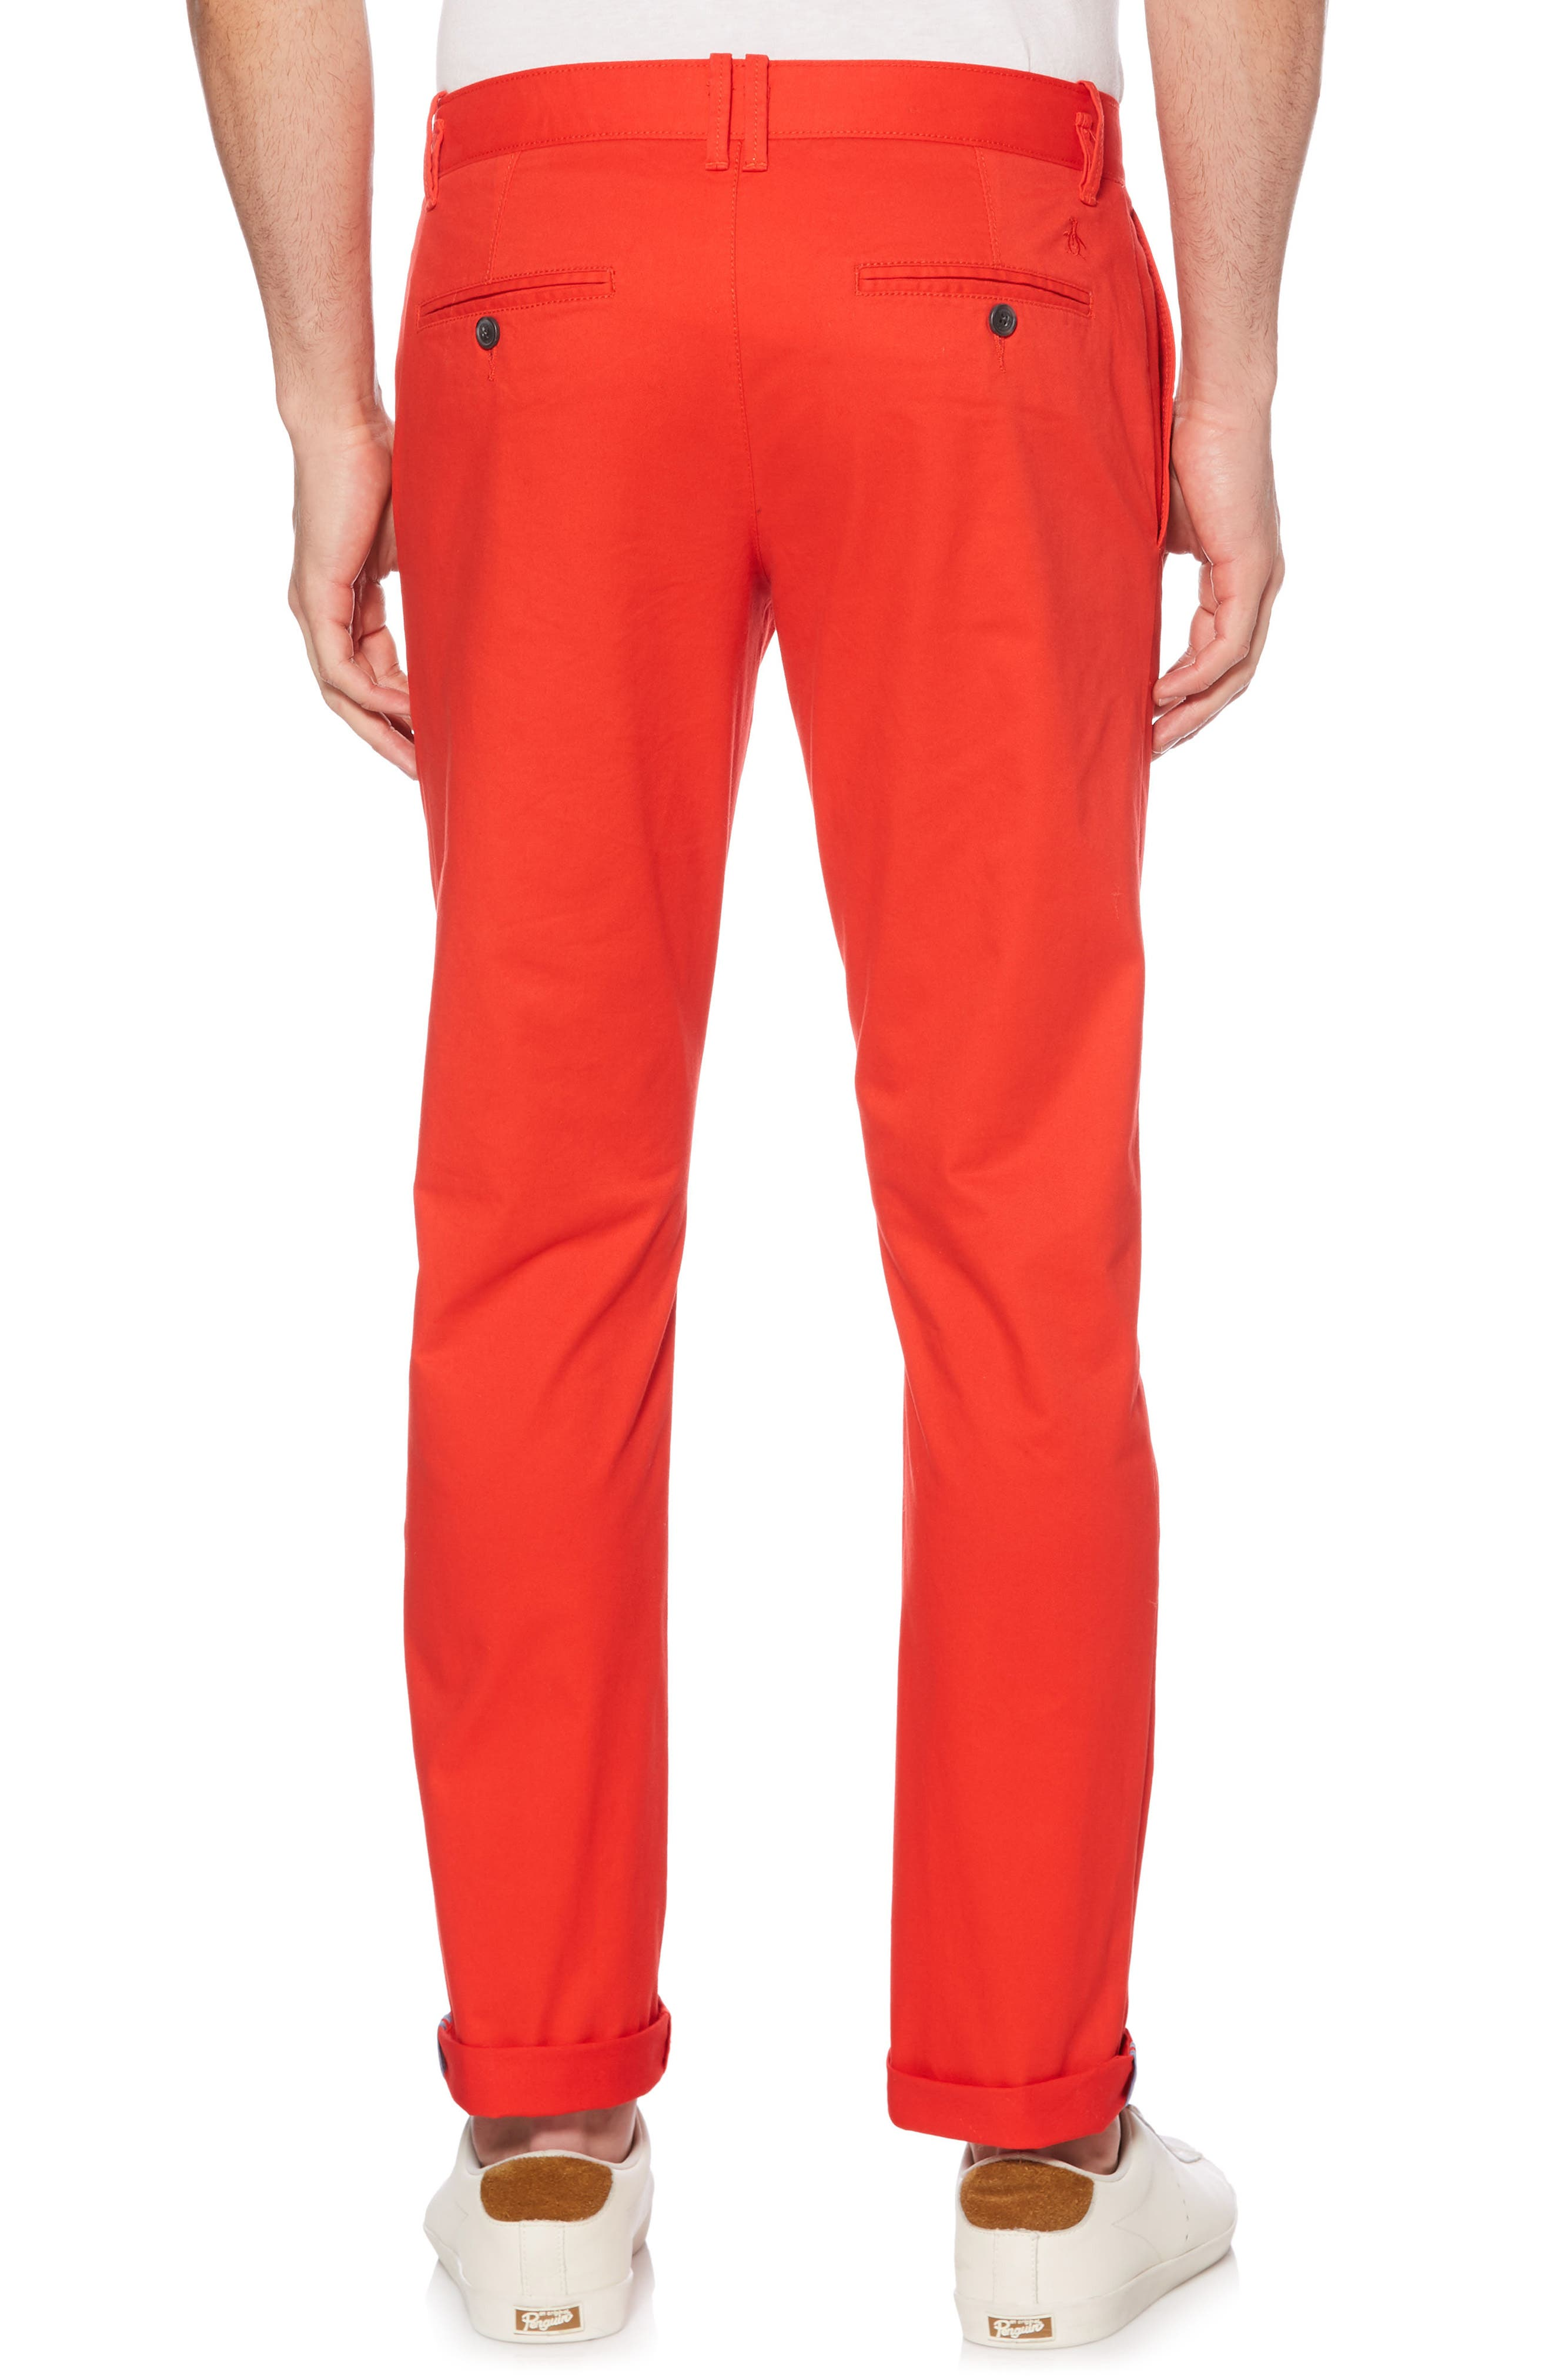 P55 Slim Stretch Chinos,                             Alternate thumbnail 2, color,                             Flame Scarlet